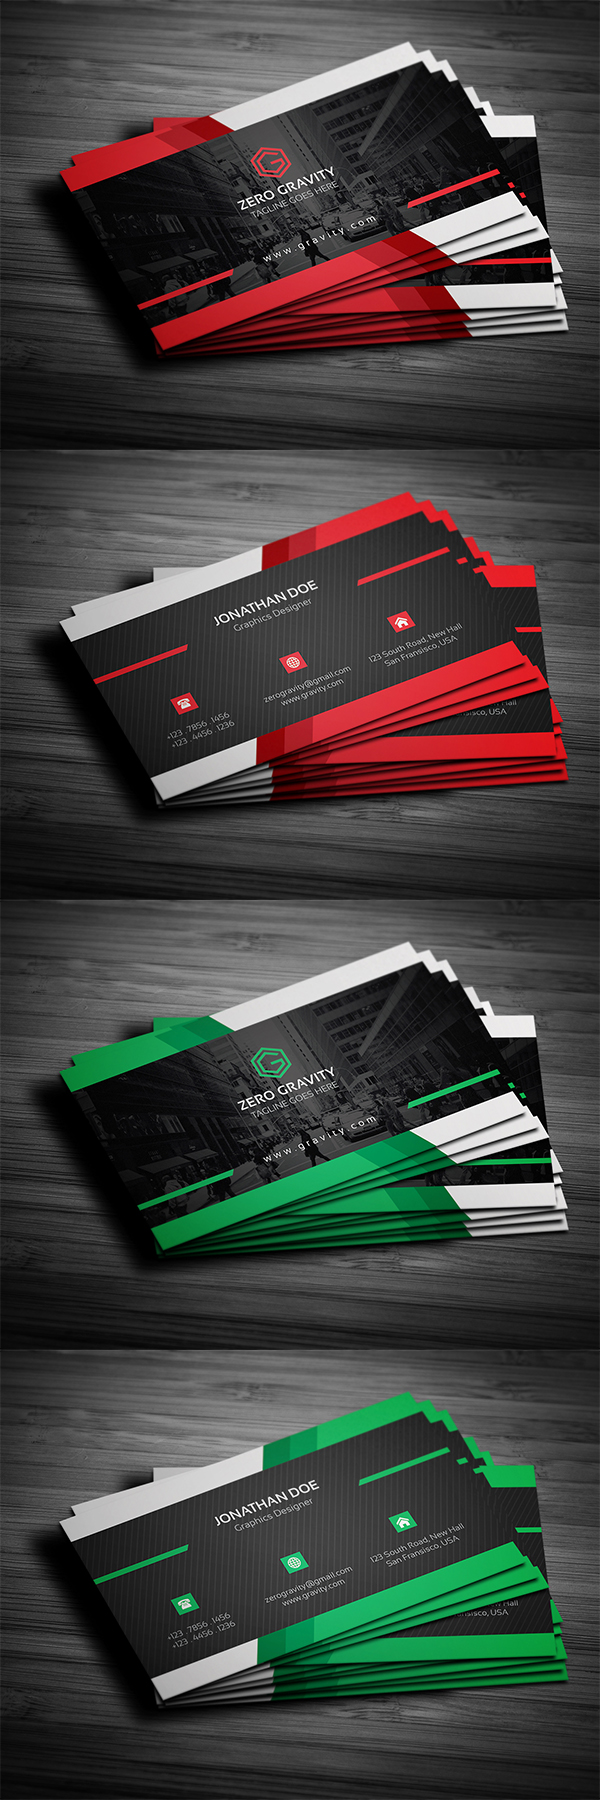 04 Business Card Design